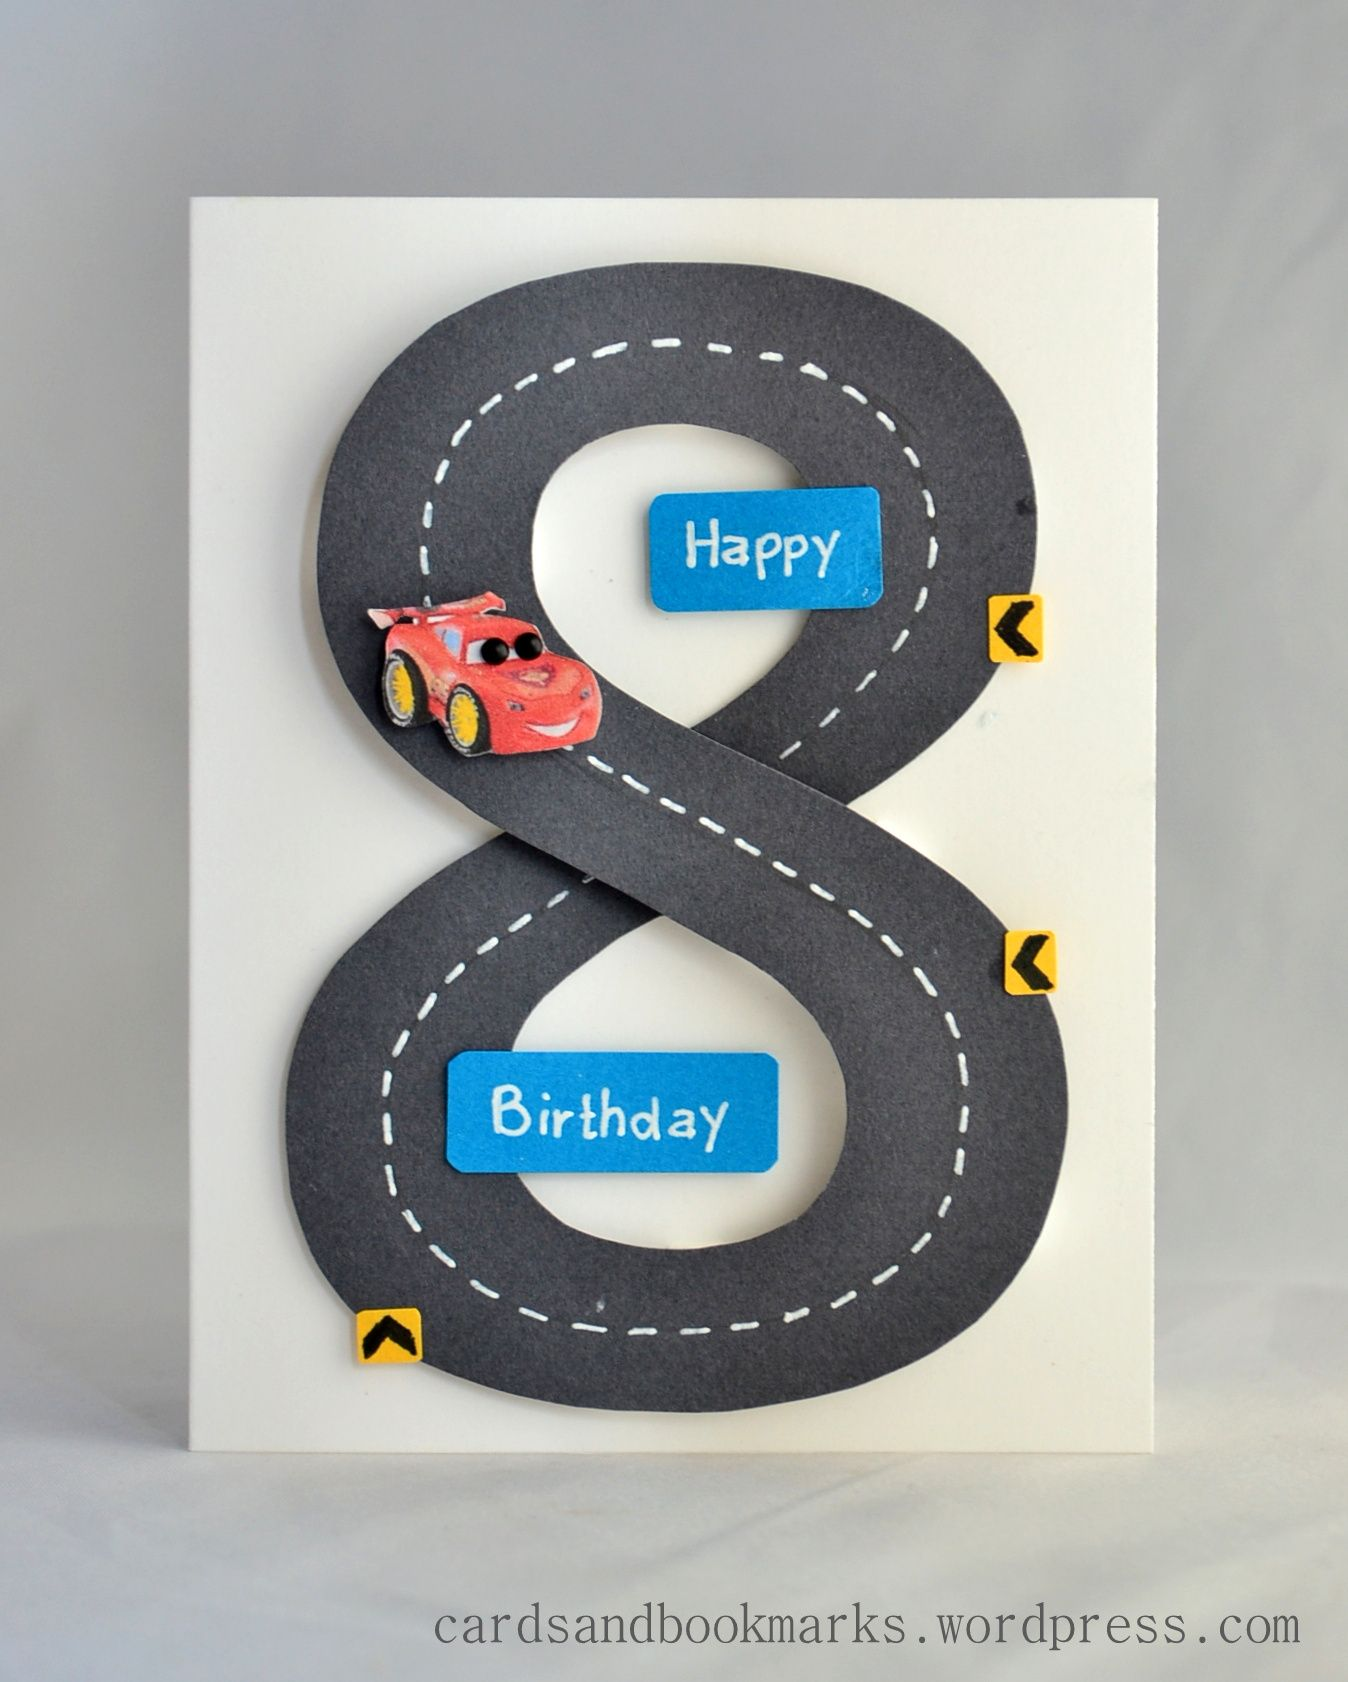 Handmade Card For 8th Birthday Number 8 Formed By A Two Way Highway Clever